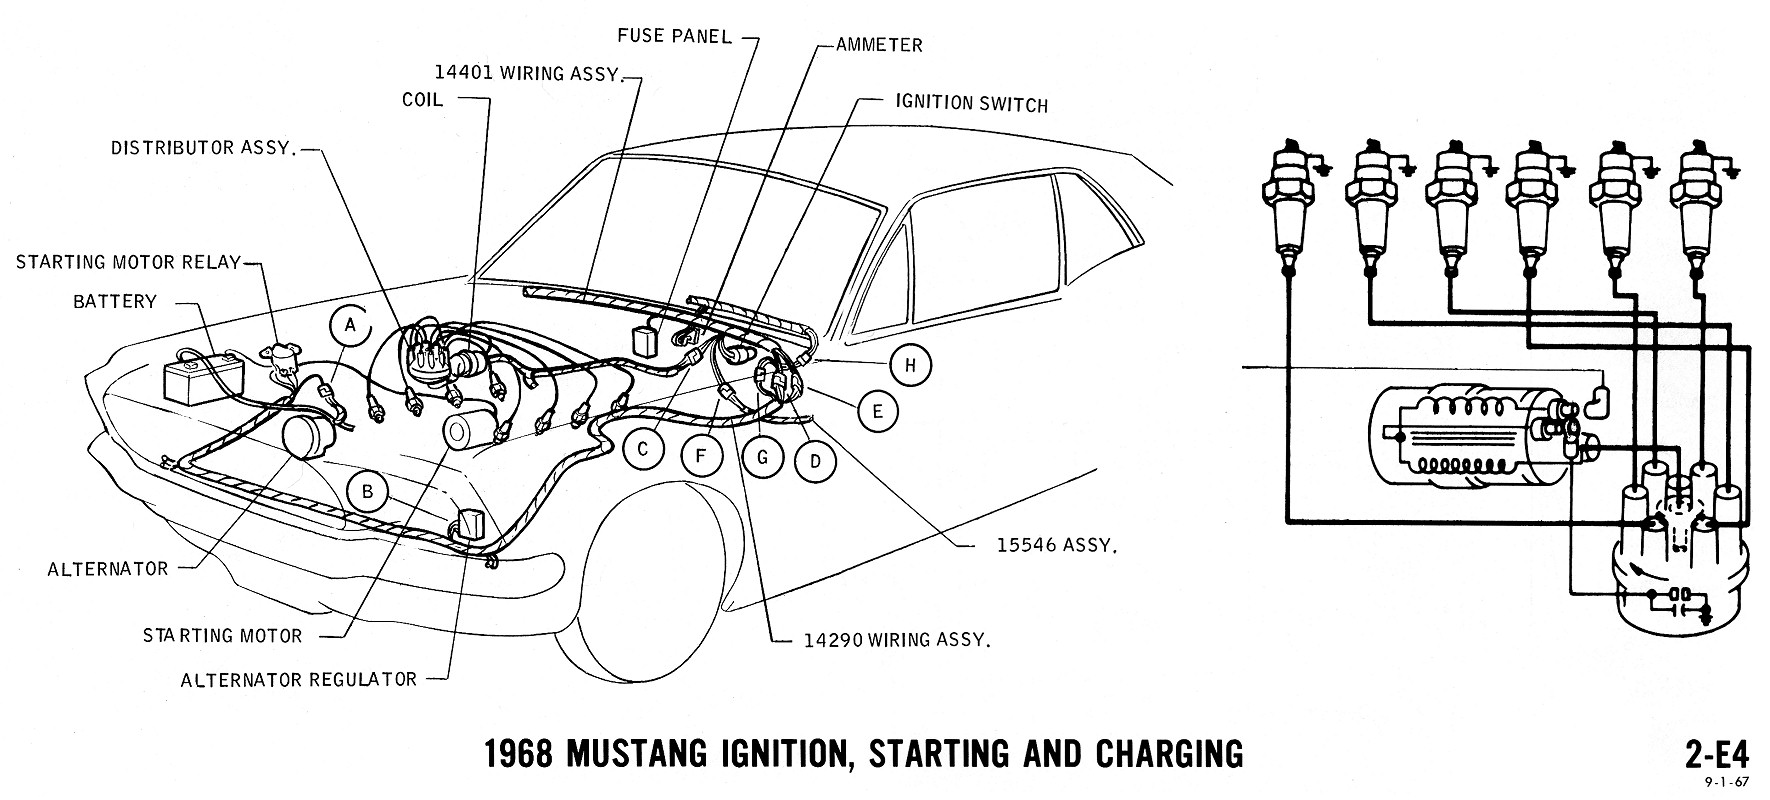 1968 mustang ignition harness wiring   36 wiring diagram images